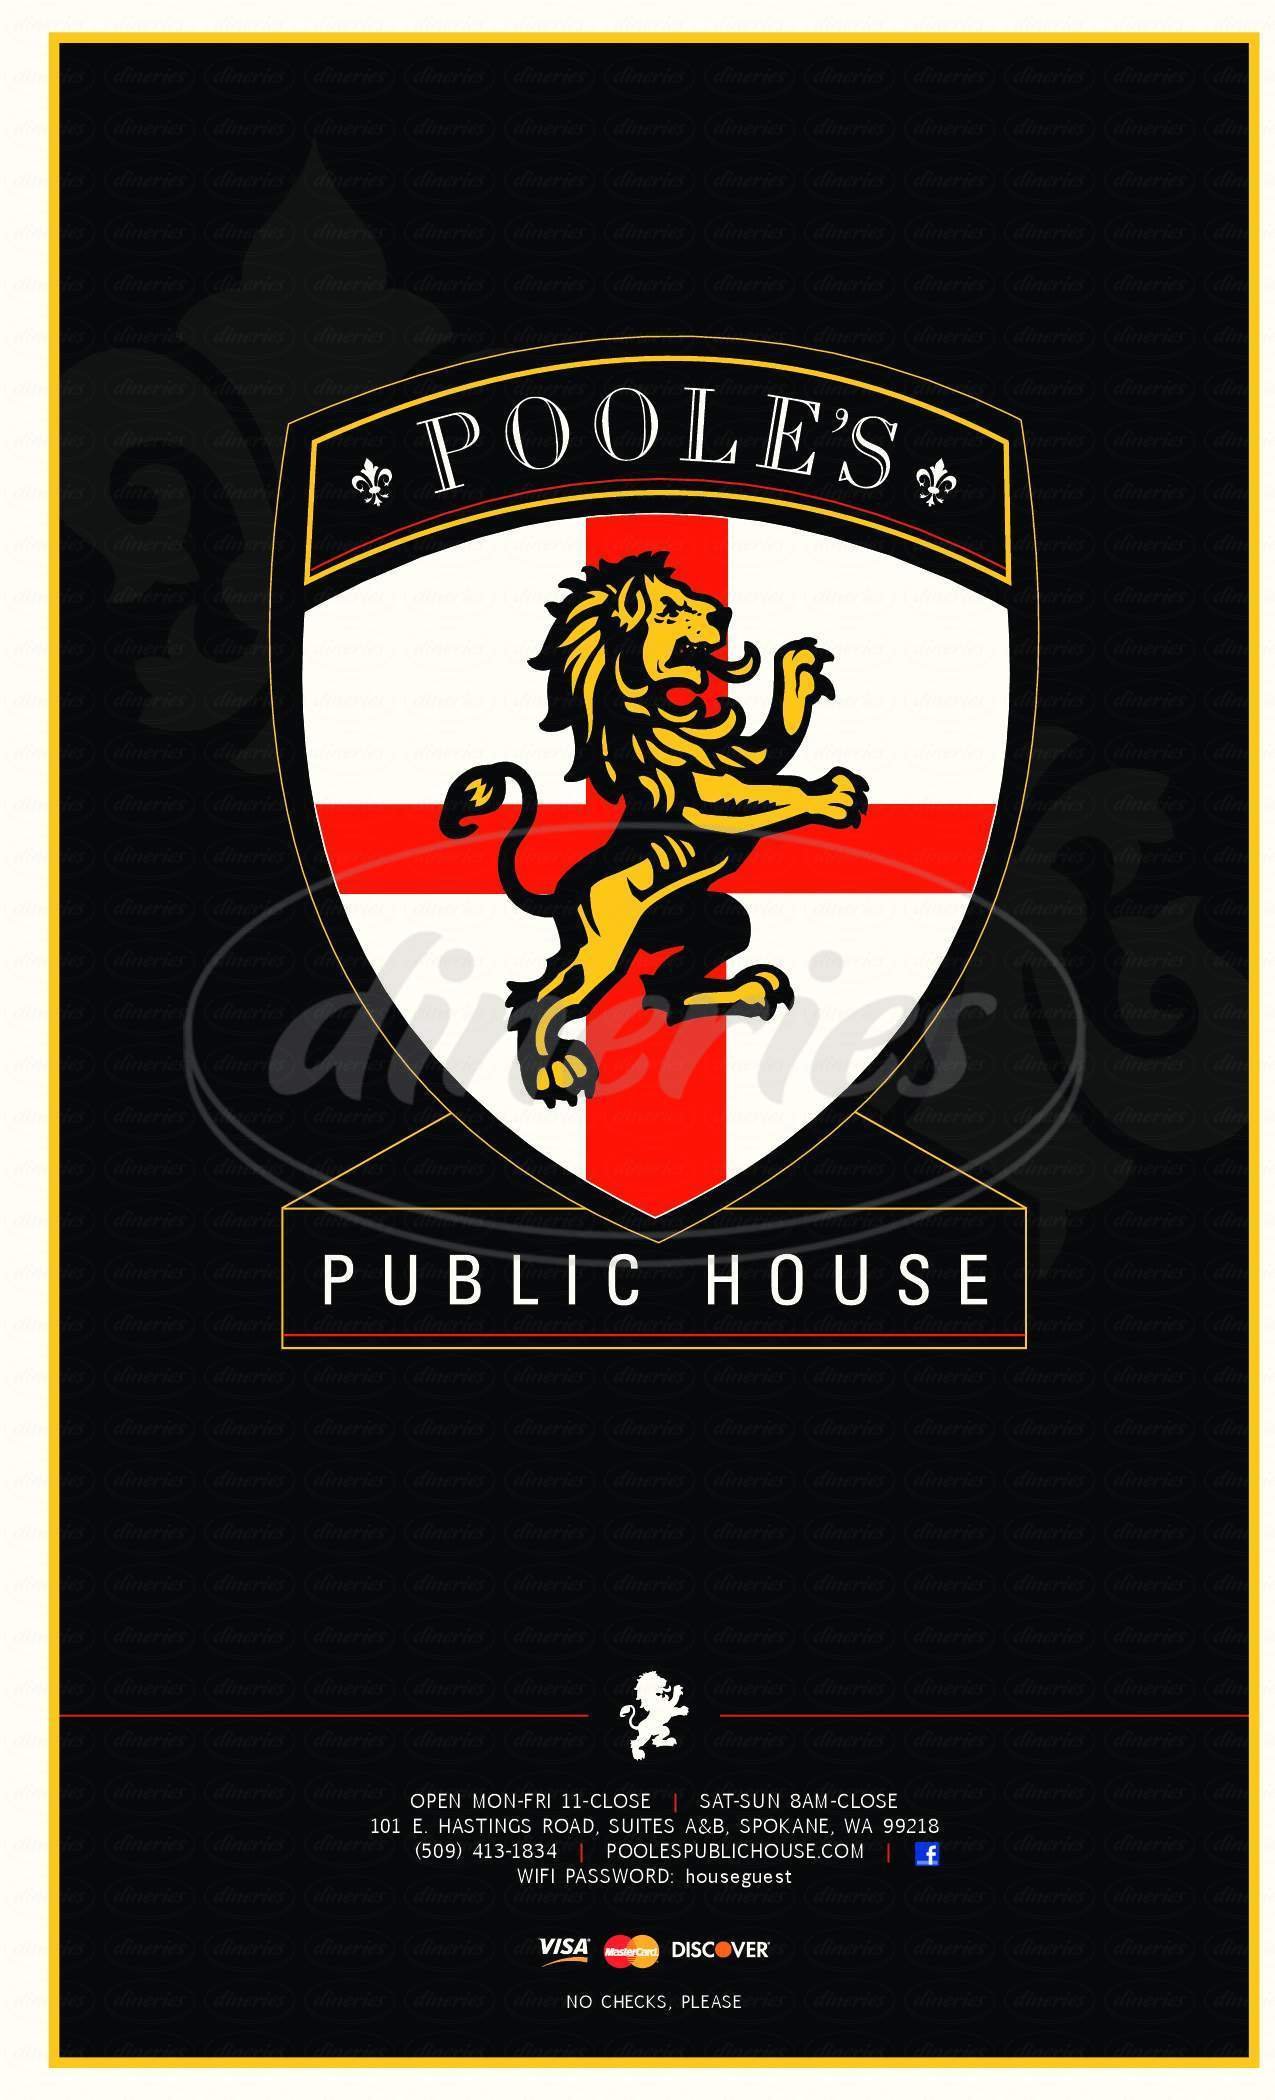 menu for Poole's Public House